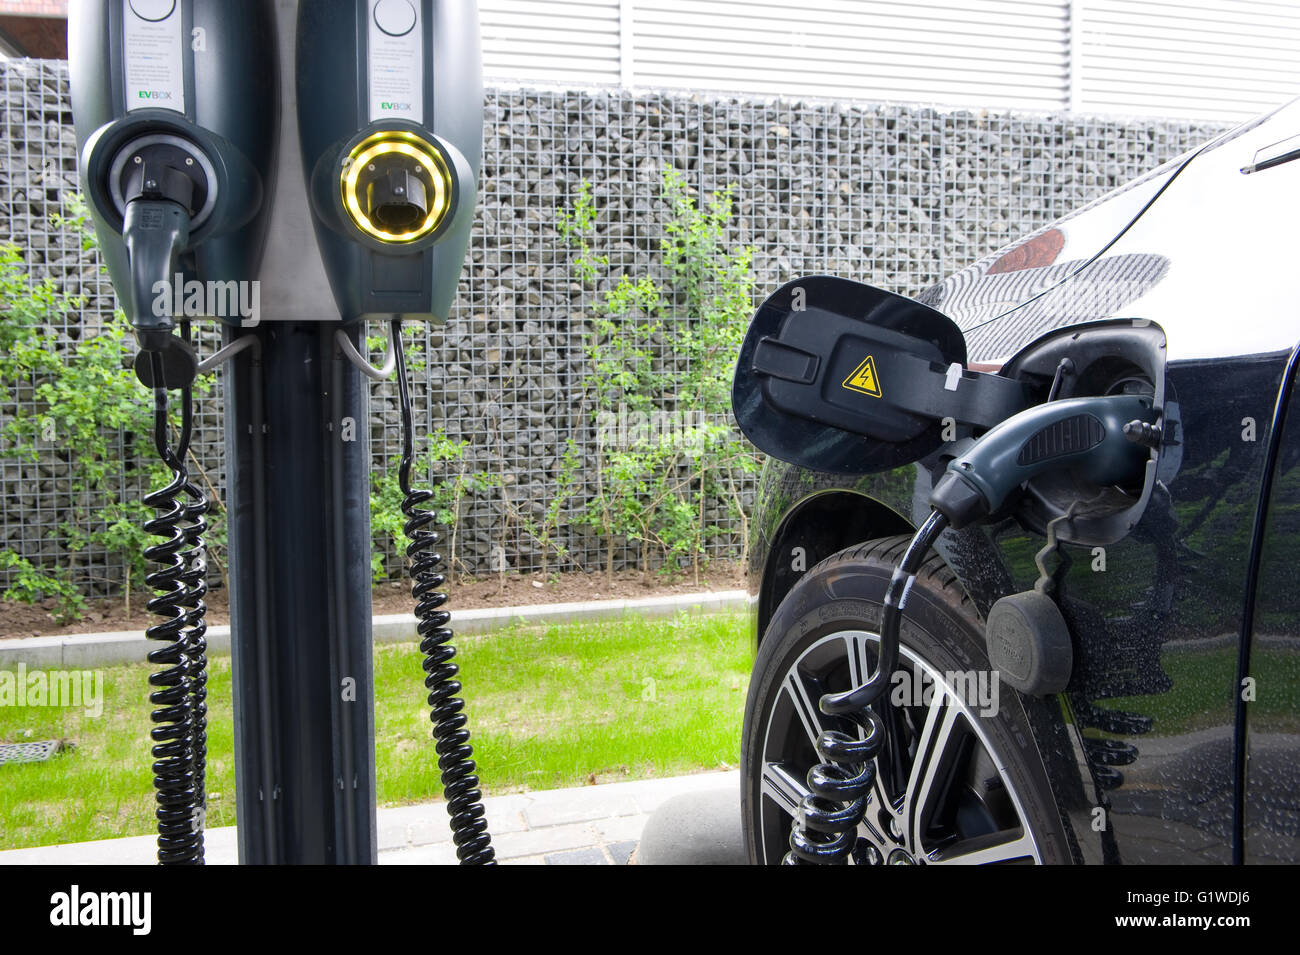 An electric car is parked at a parking spot and is being recharged at a power station. - Stock Image